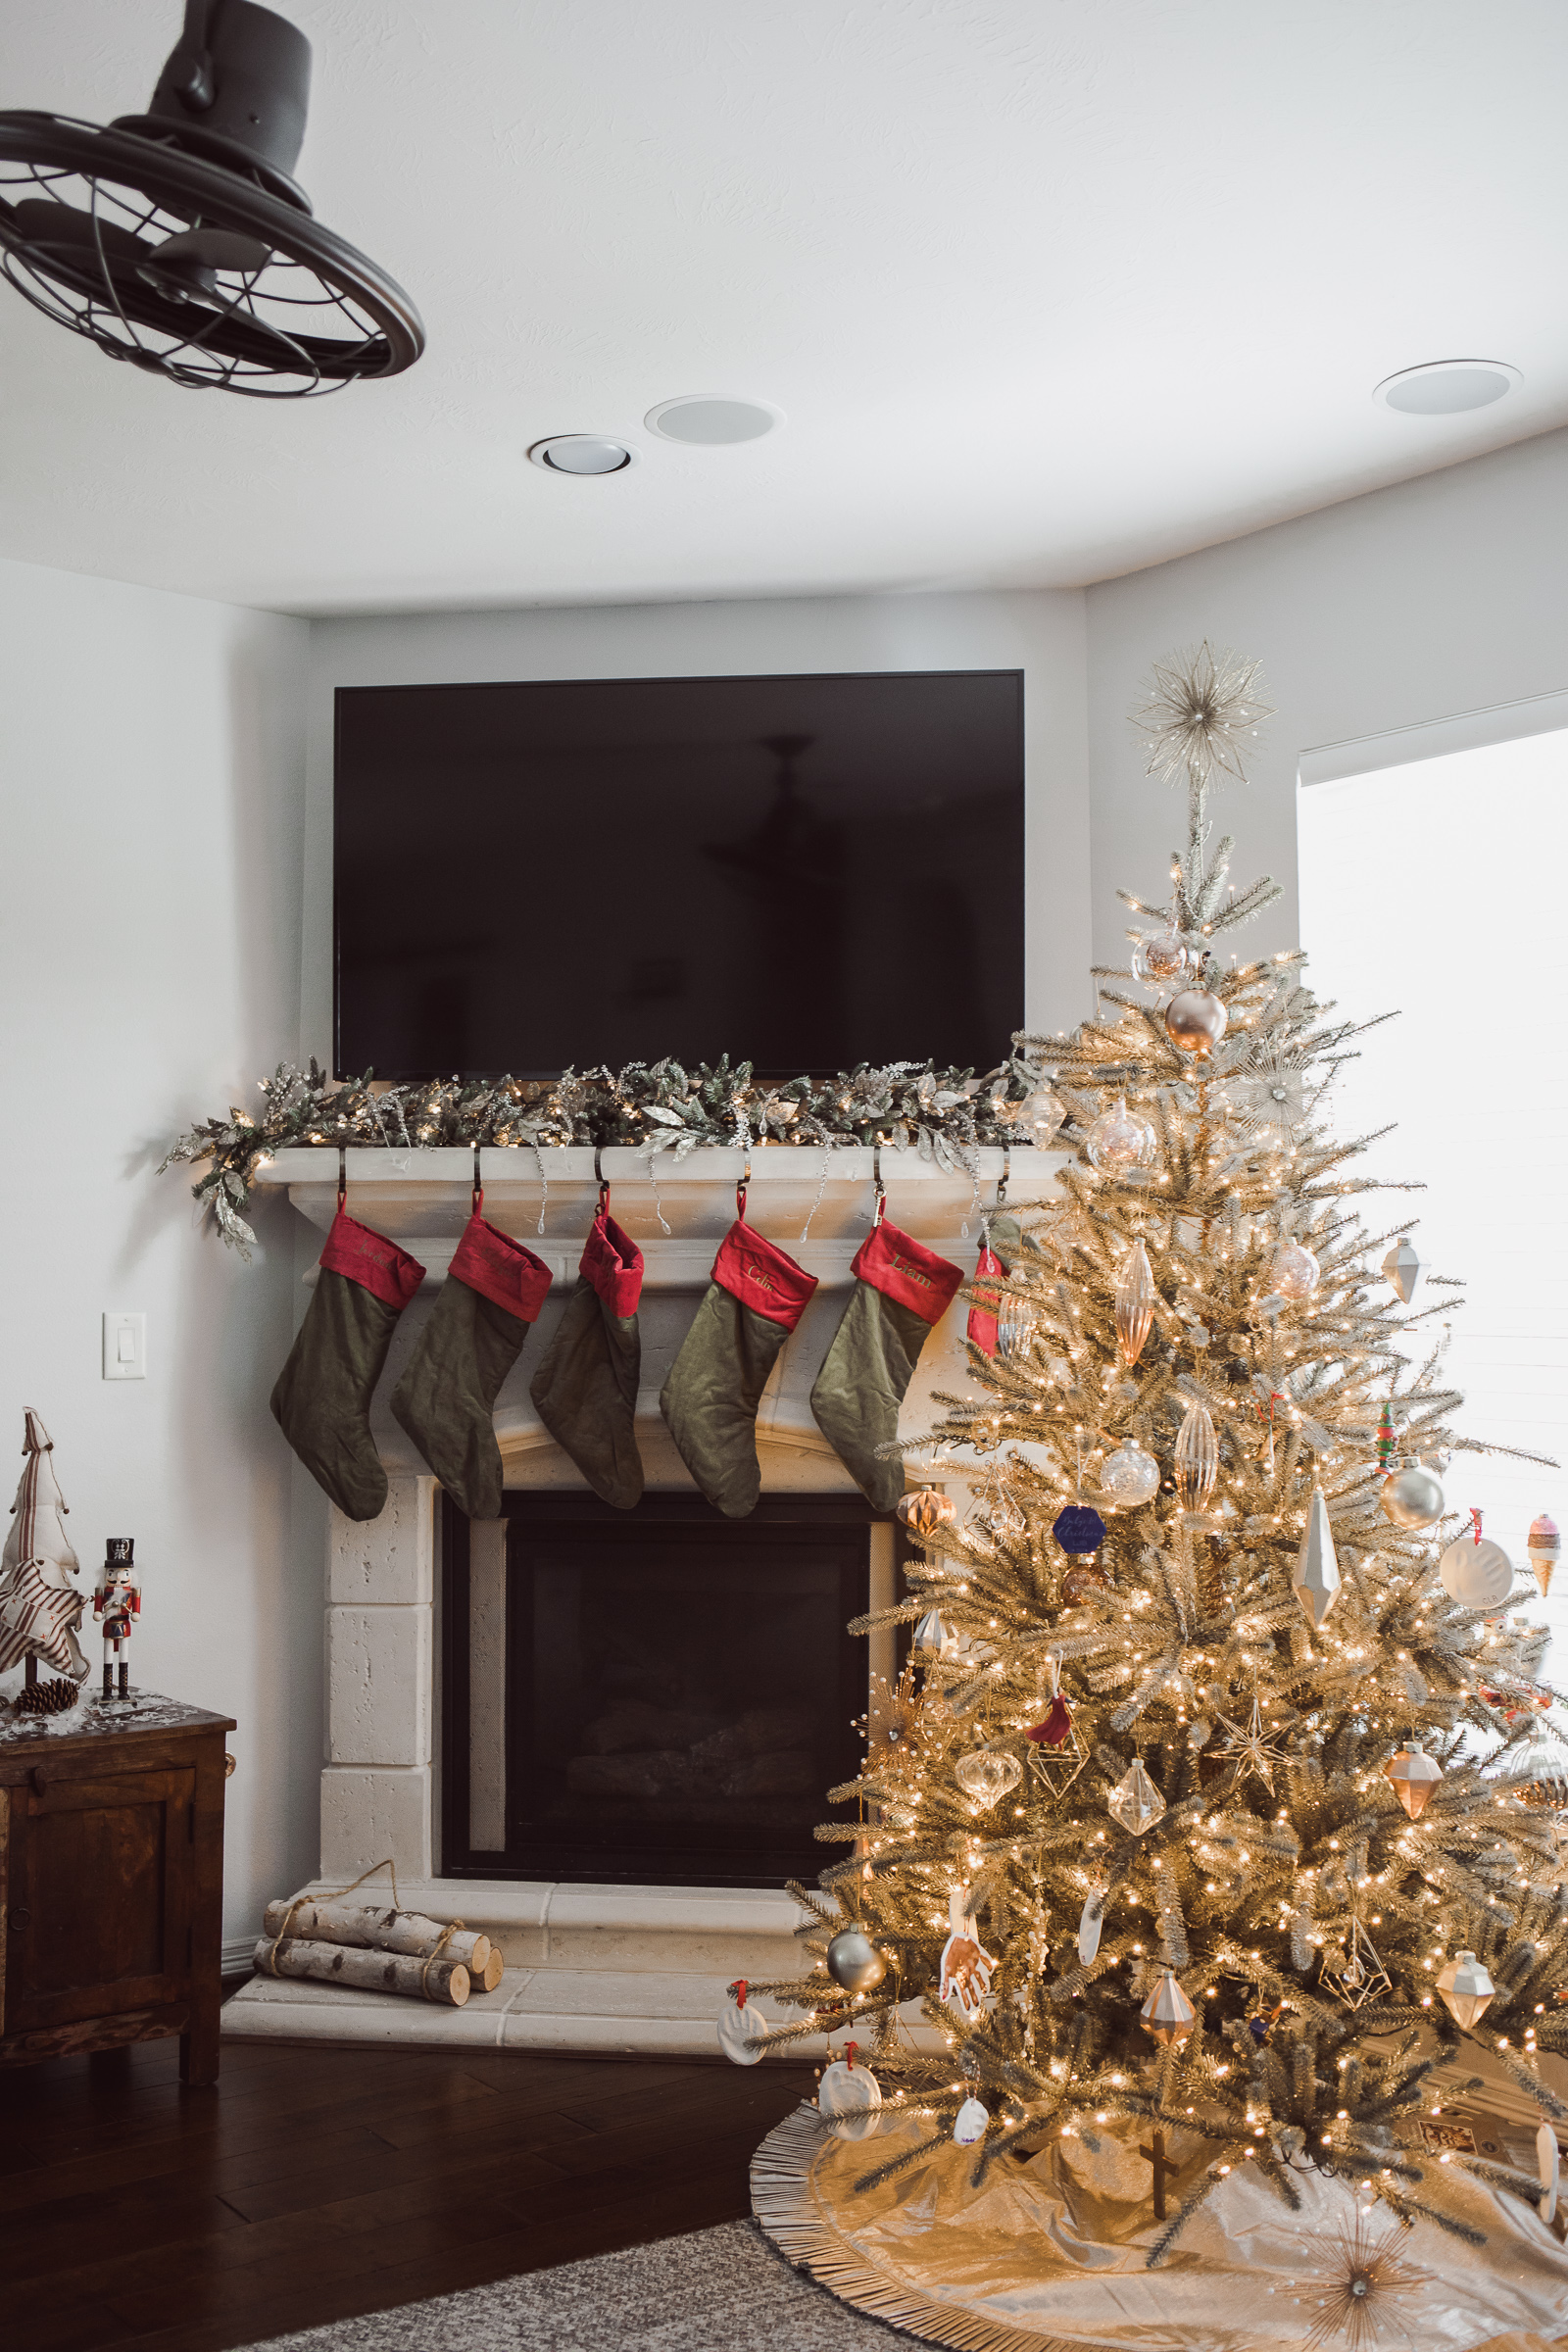 Houston lifestyle blogger Uptown with Elly Brown shares her Balsam Hill x Nicole Miller Christmas Decorations for her home.